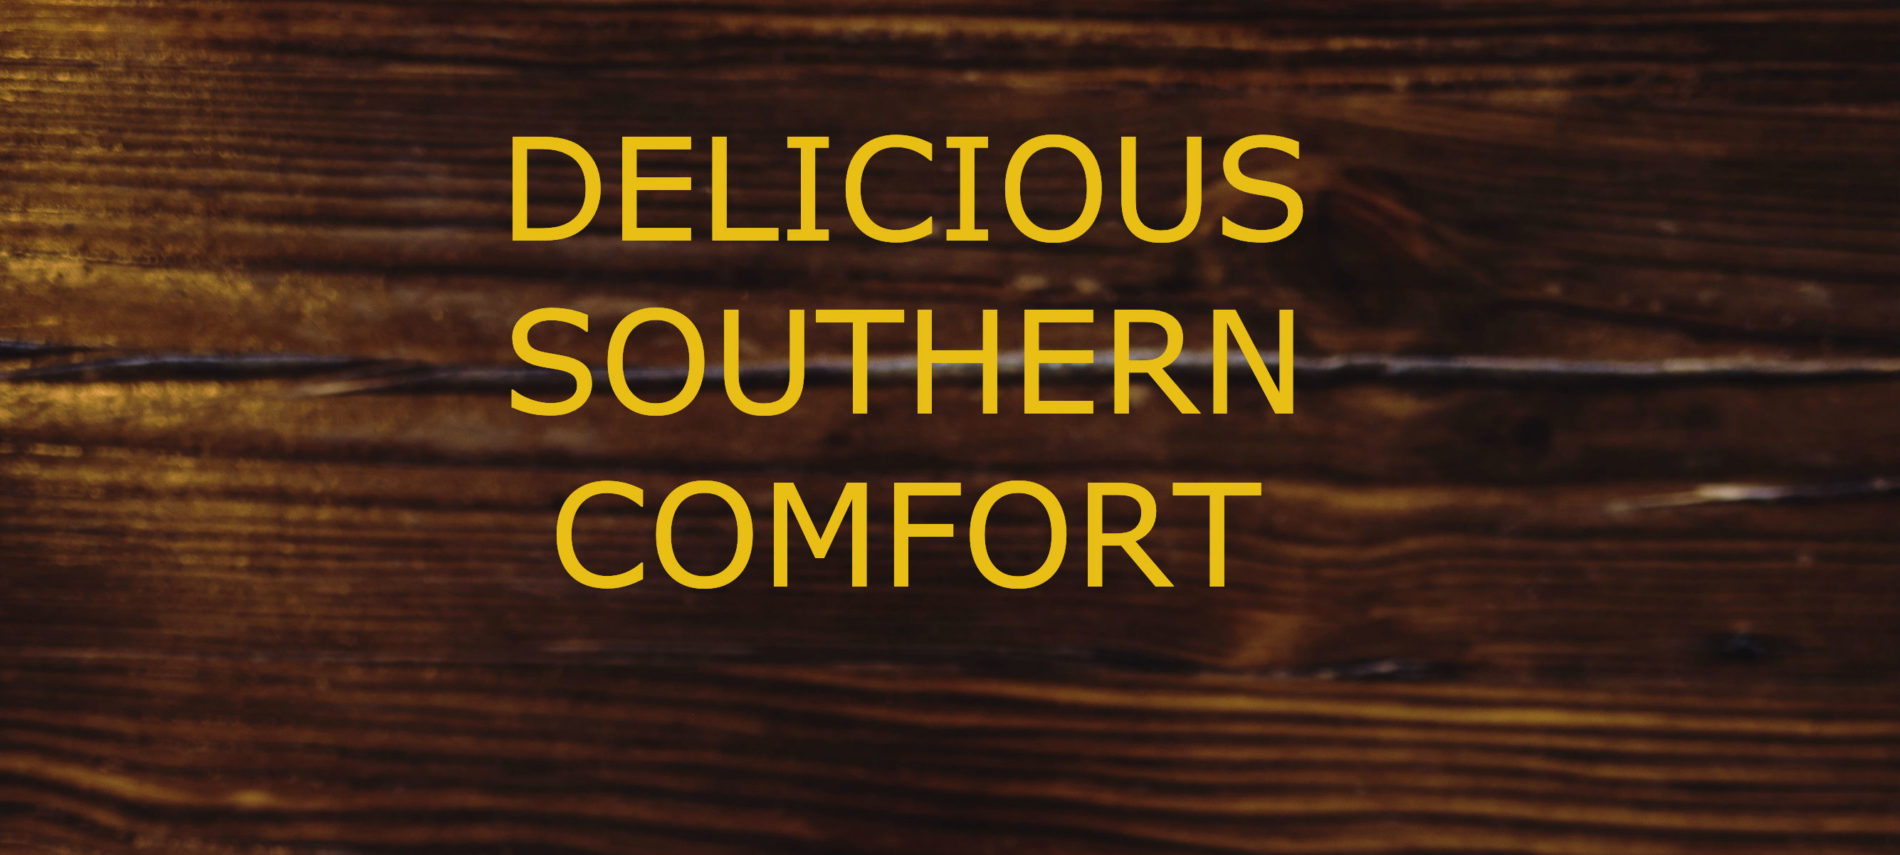 Dark wood table top with title: Delicious Southern Comfort